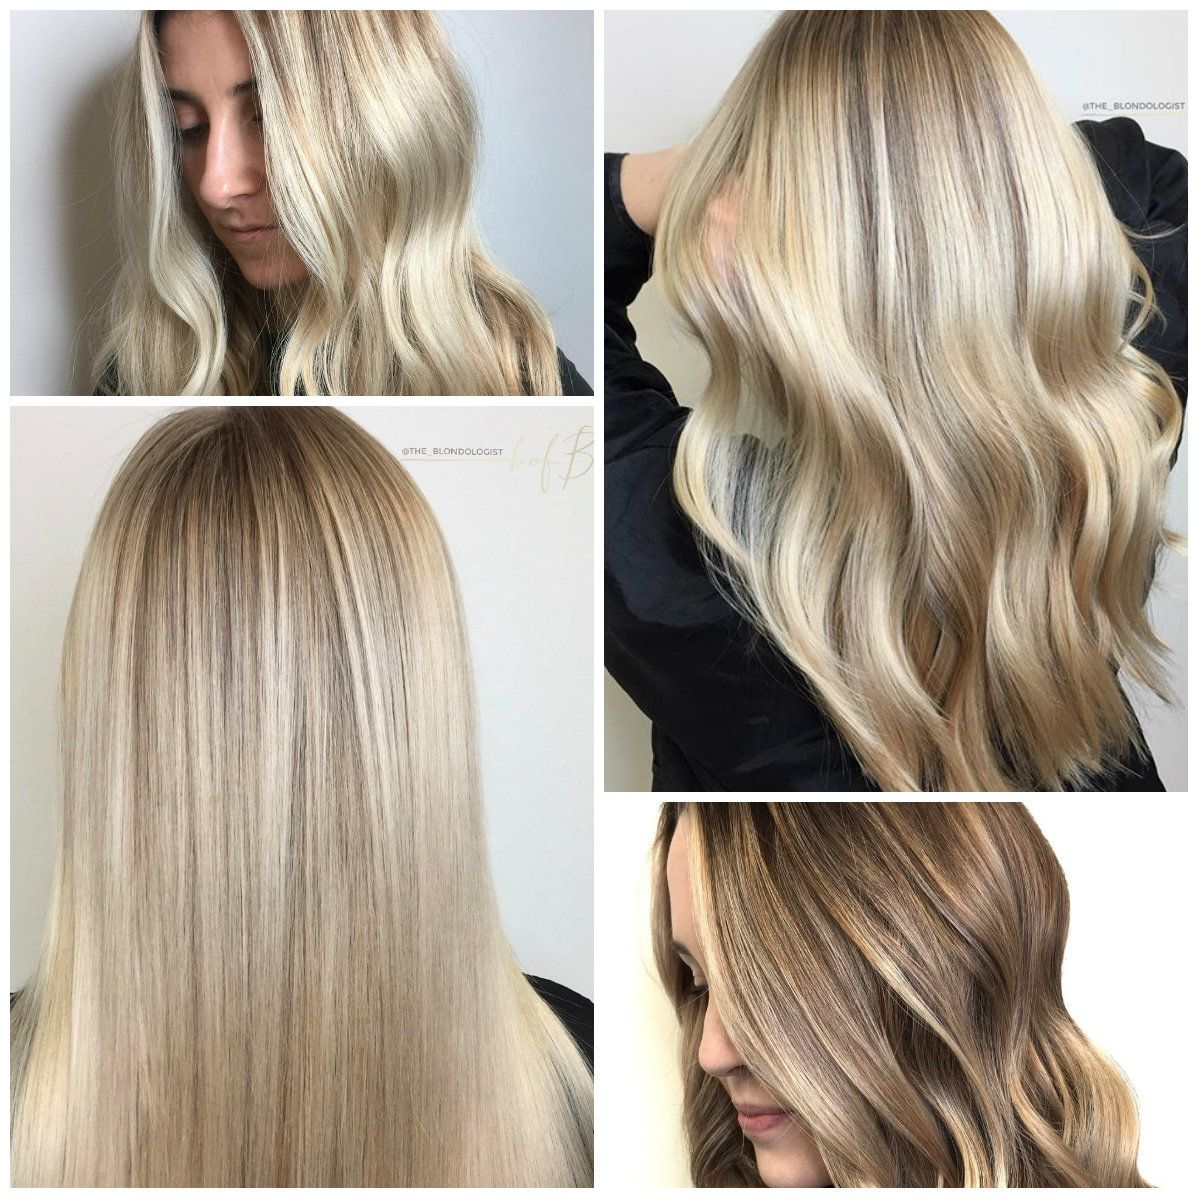 Popular color trends 2017 - Hottest Blonde Hair Color Trends For 2017 Best Hair Color Trends 2017 Top Hair Color Ideas For You